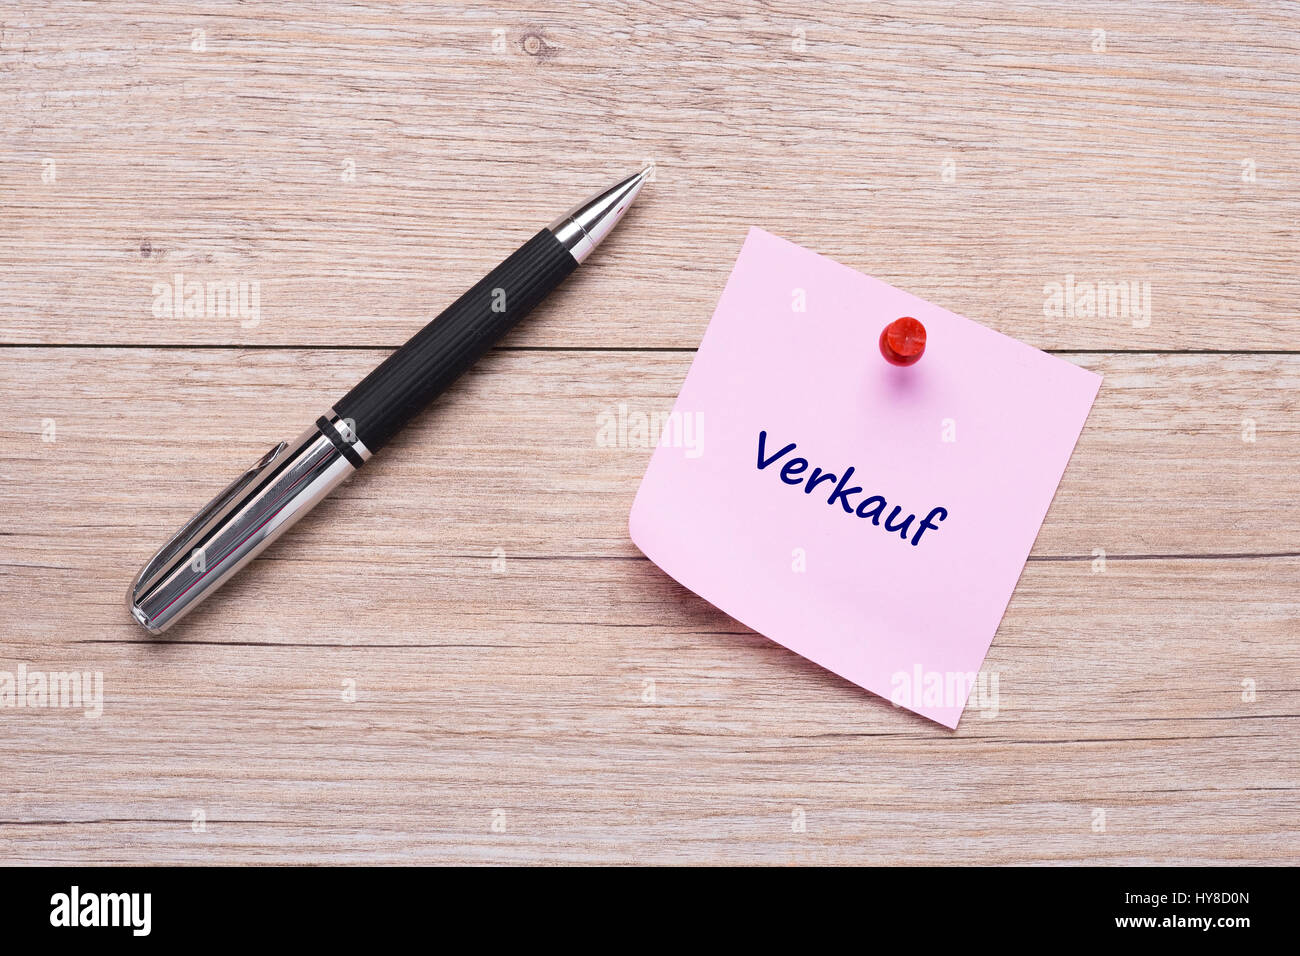 German word for sales 'Verkauf' on pink sticky note and wooden board - Stock Image